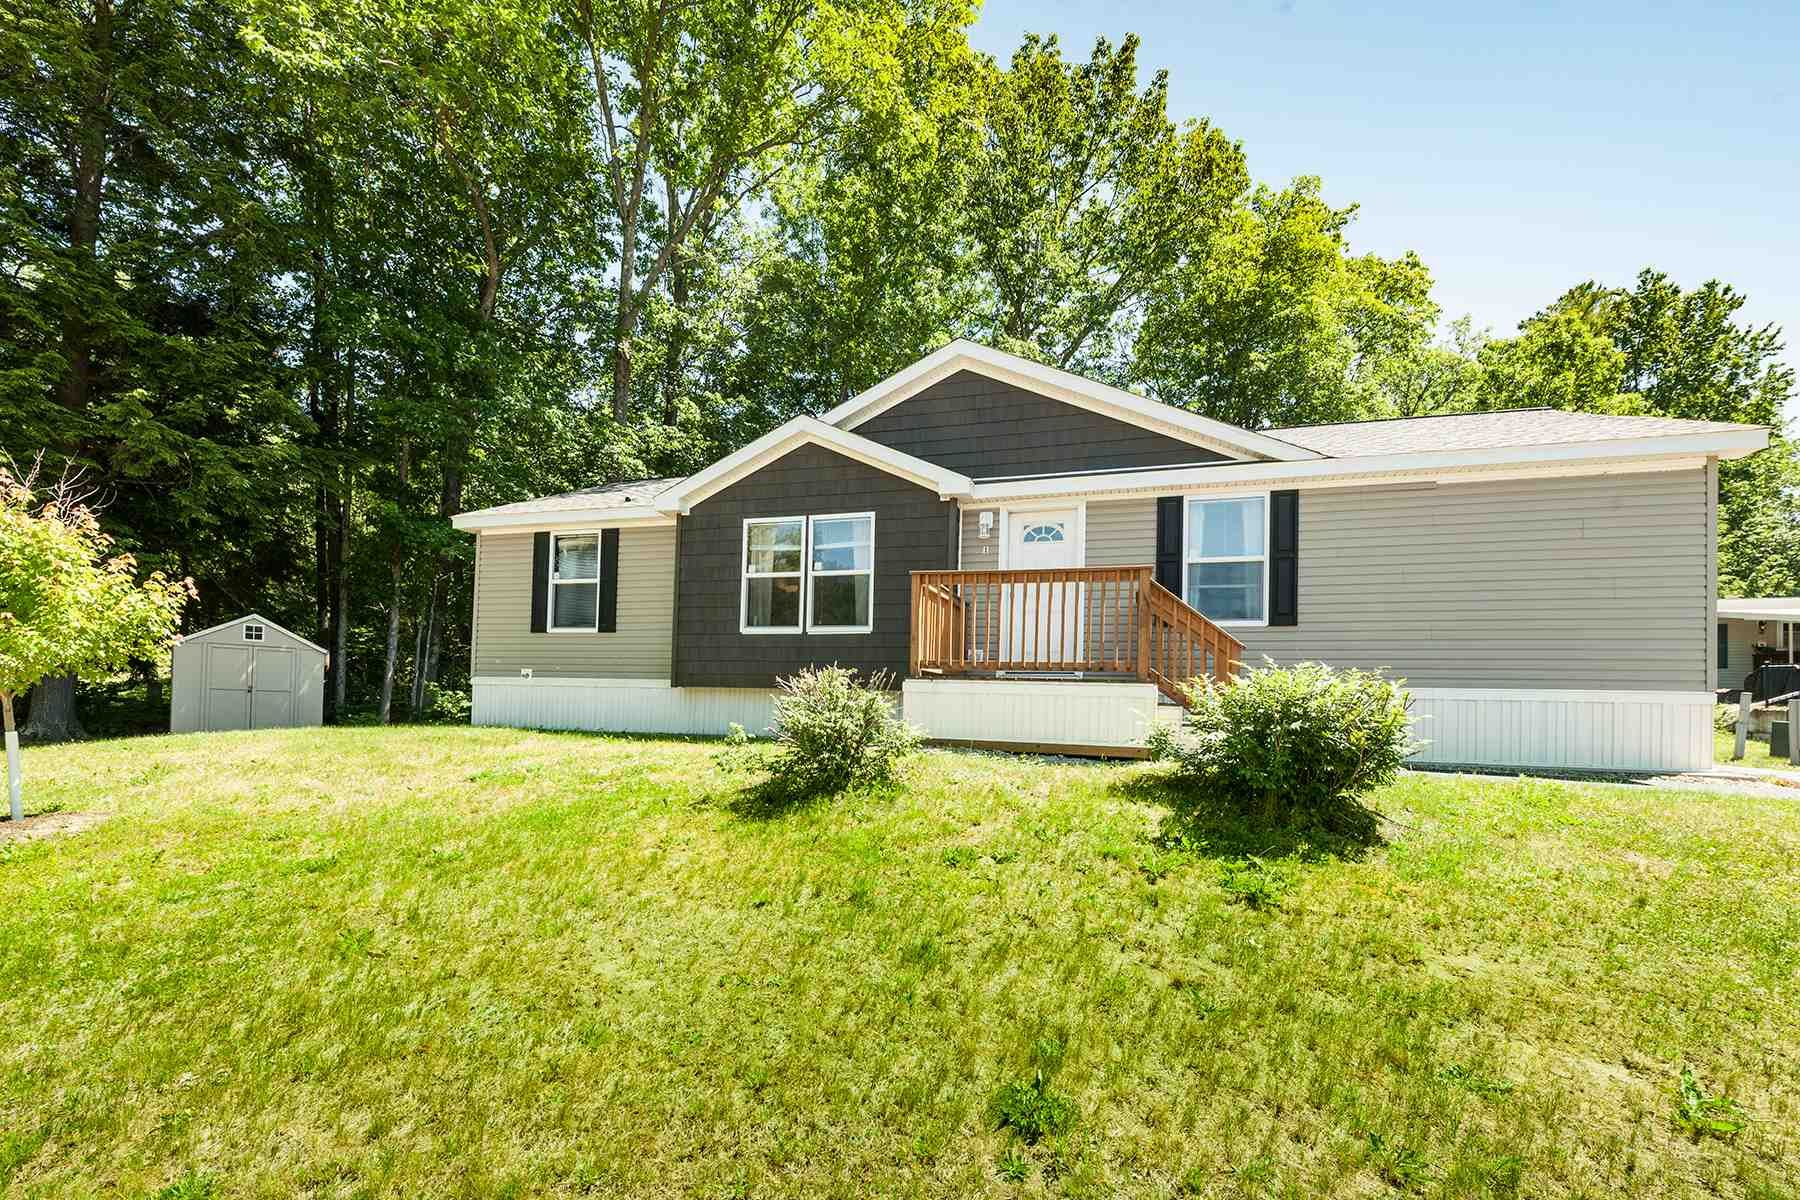 1 Lilac Drive, Rochester, NH 03867 - #: 4811890